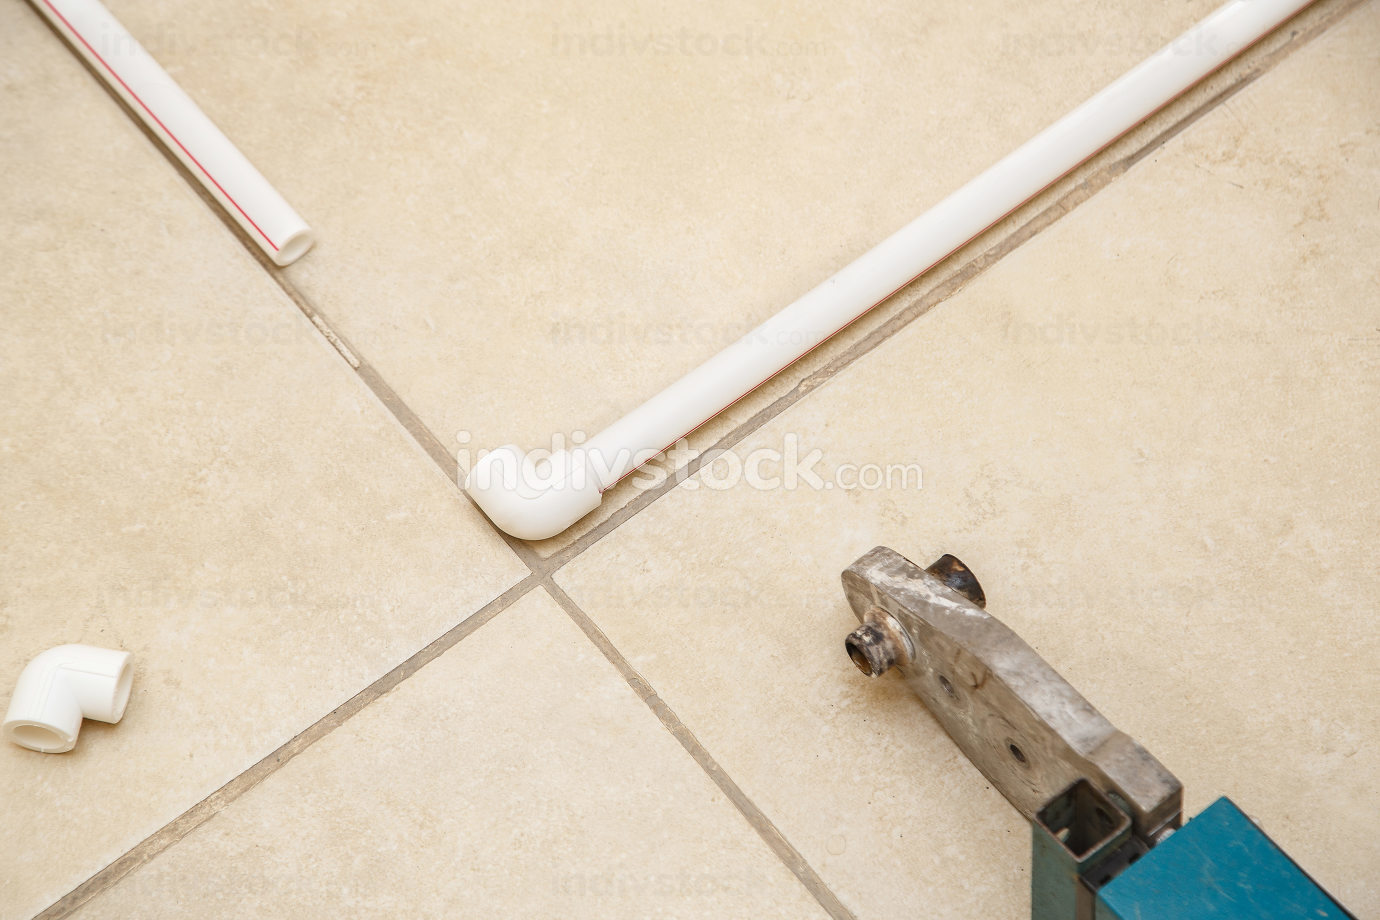 plastic pipes,plastic corner and iron for connecting plastic pipes